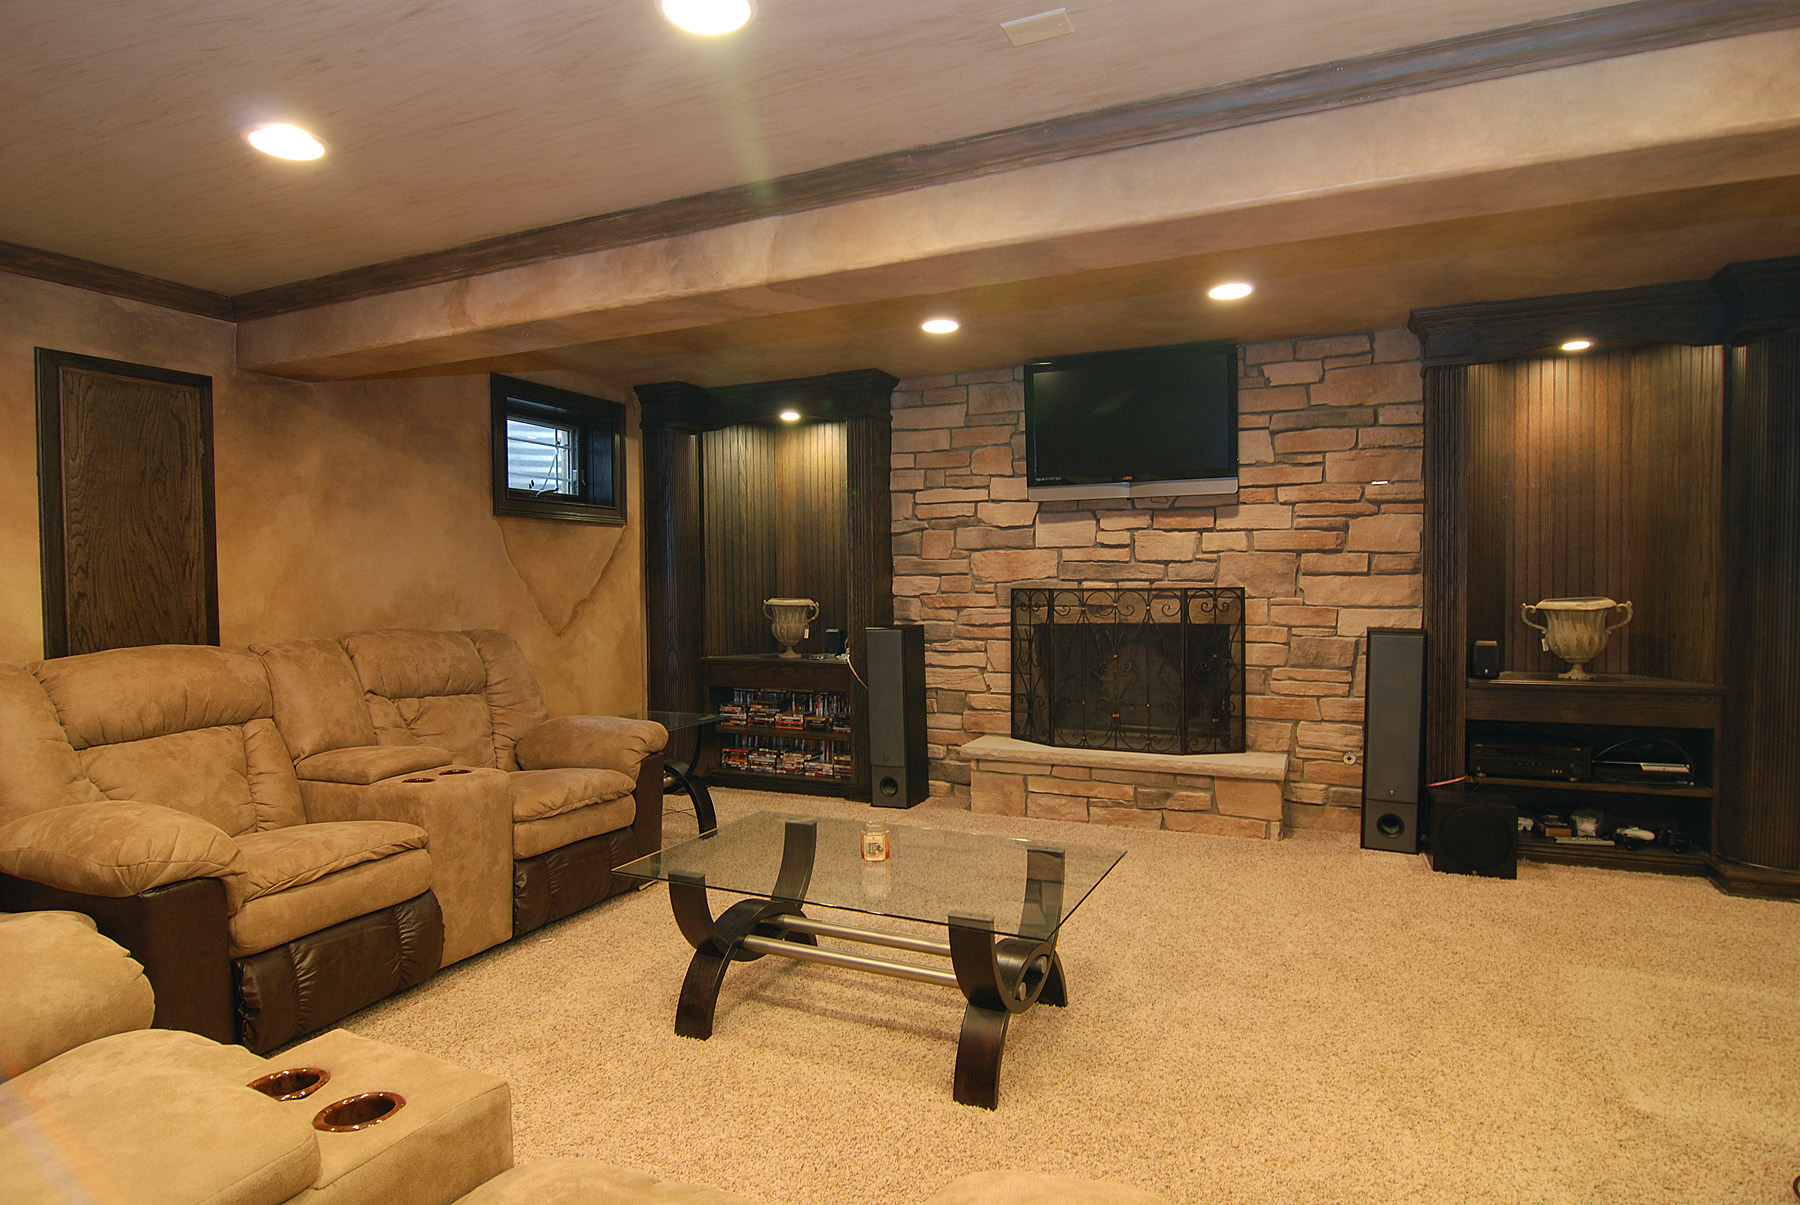 Chicago basement remodeling basement remodel chicago basement finishing homewerks - Finished basement ideas pictures ...